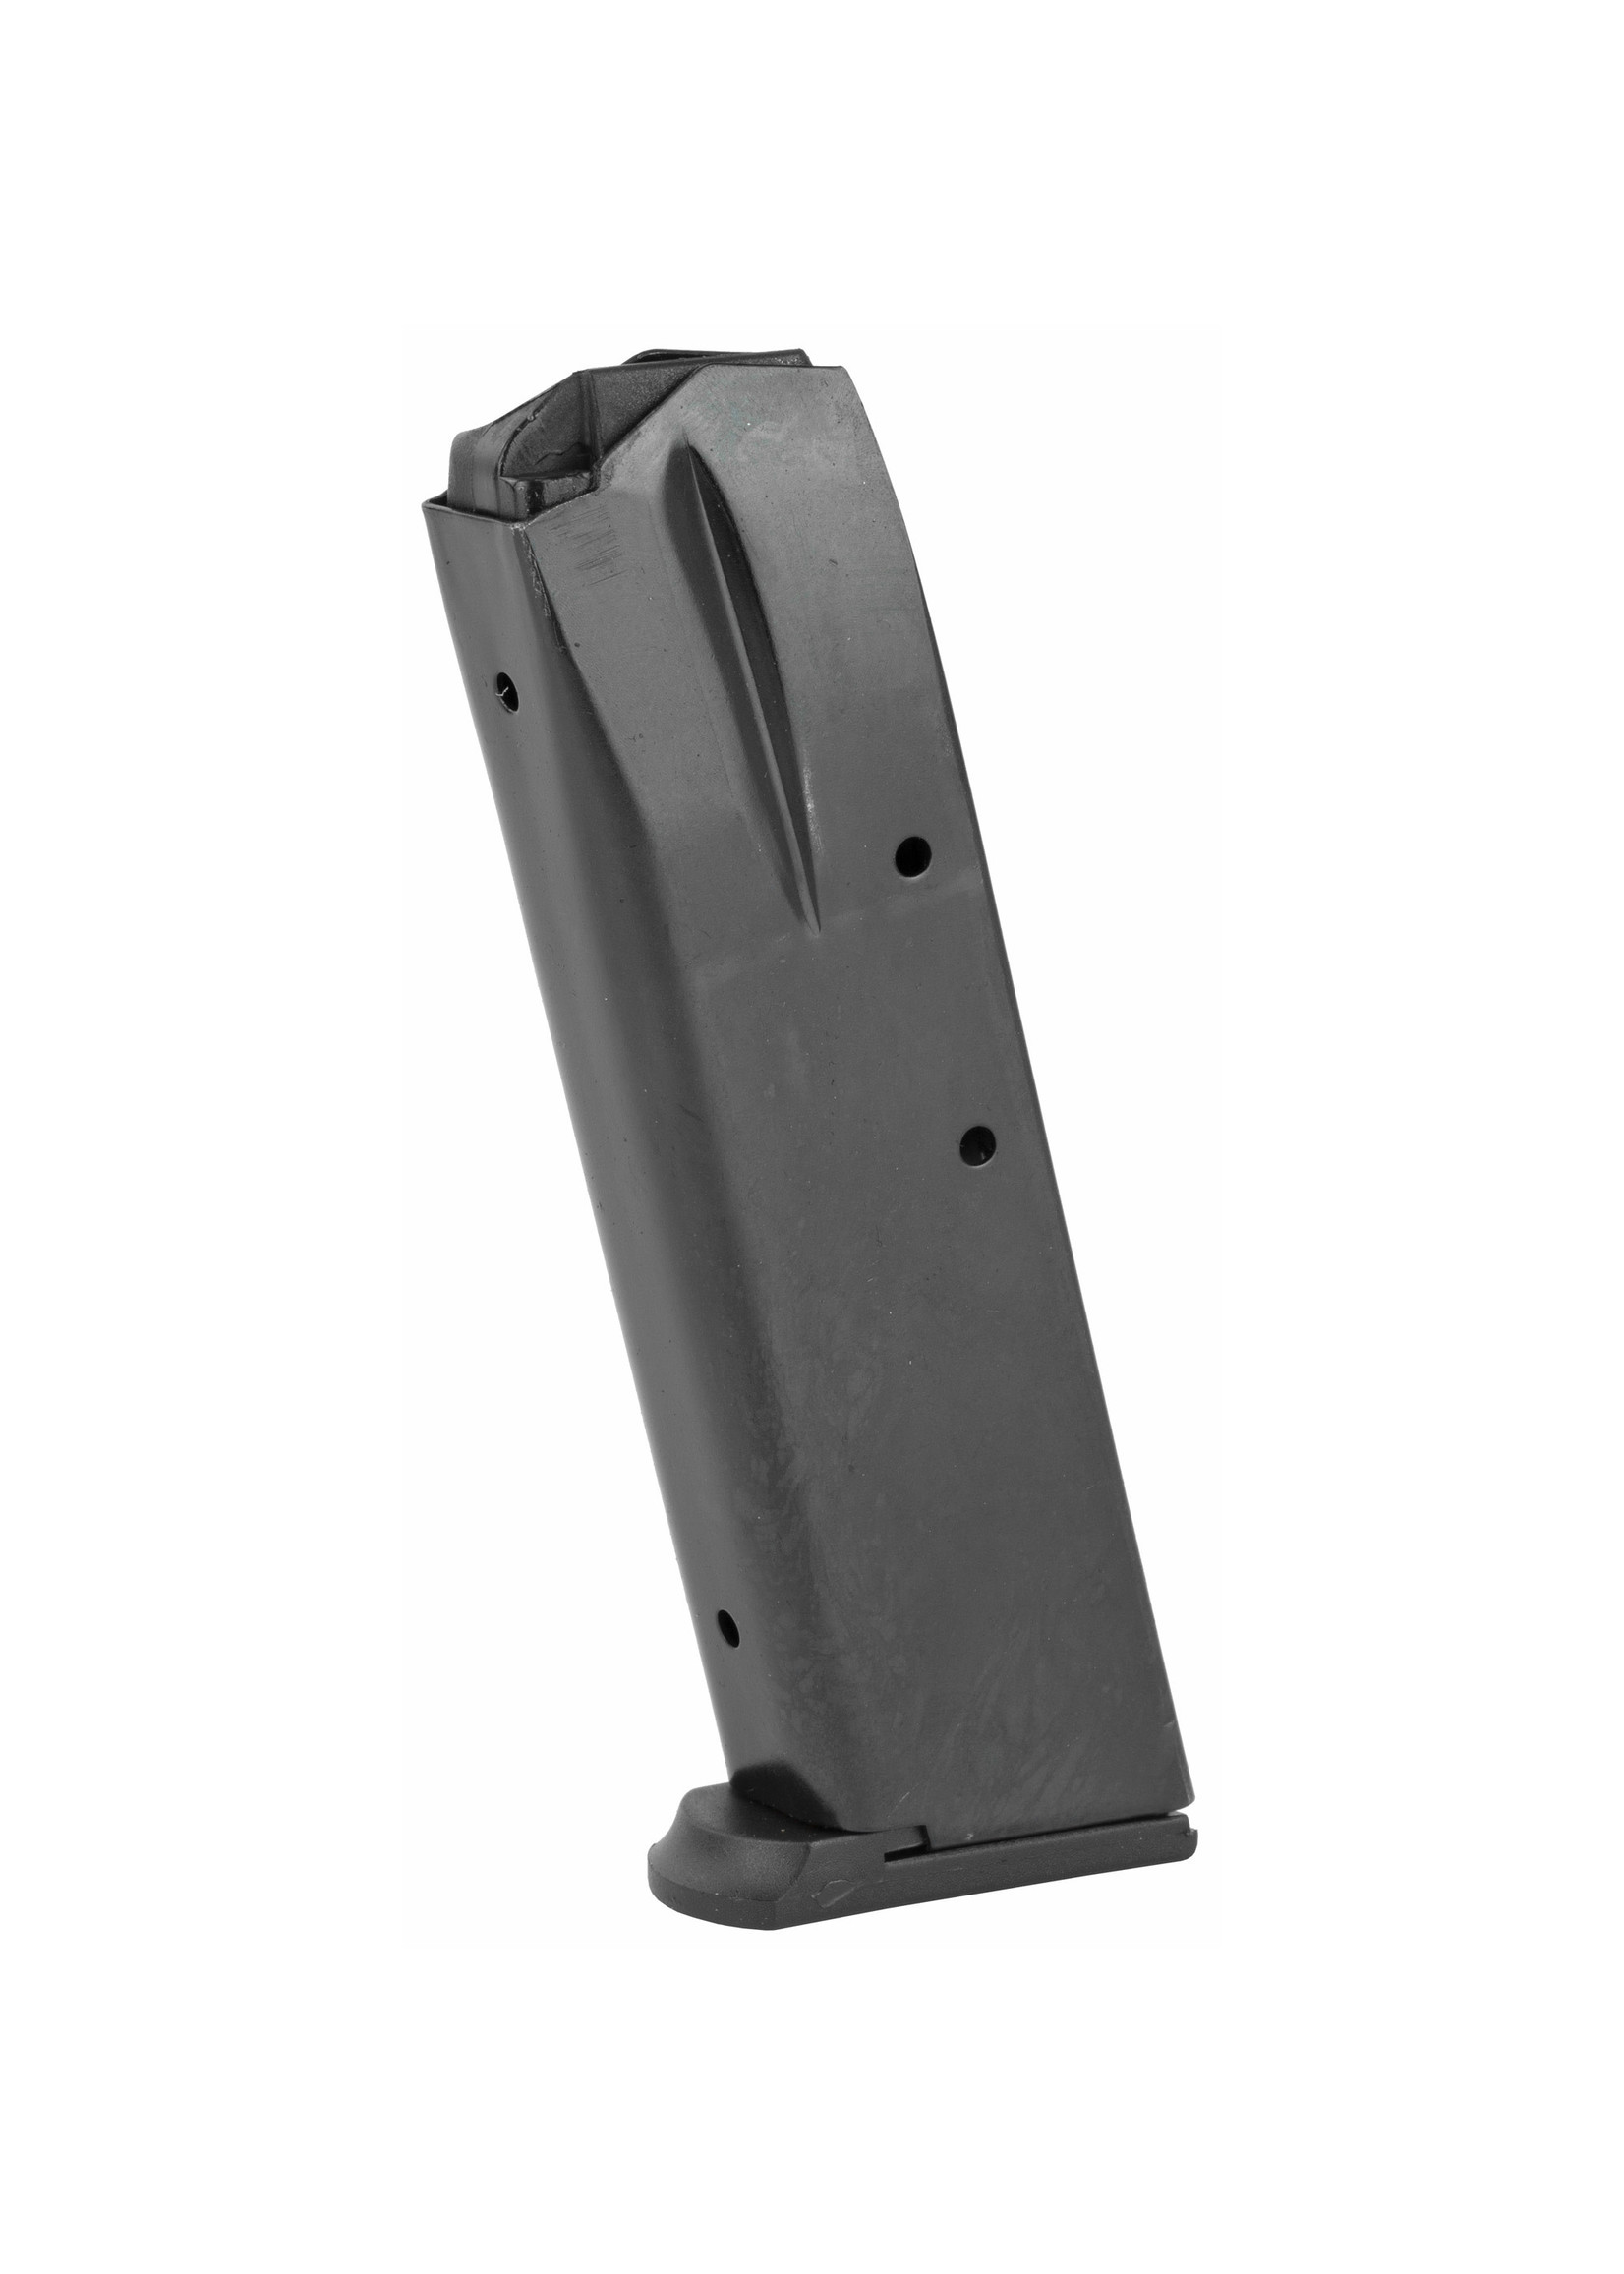 PROMAG SCCY CPX2 CPX1 15RD 9MM MAGAZINE